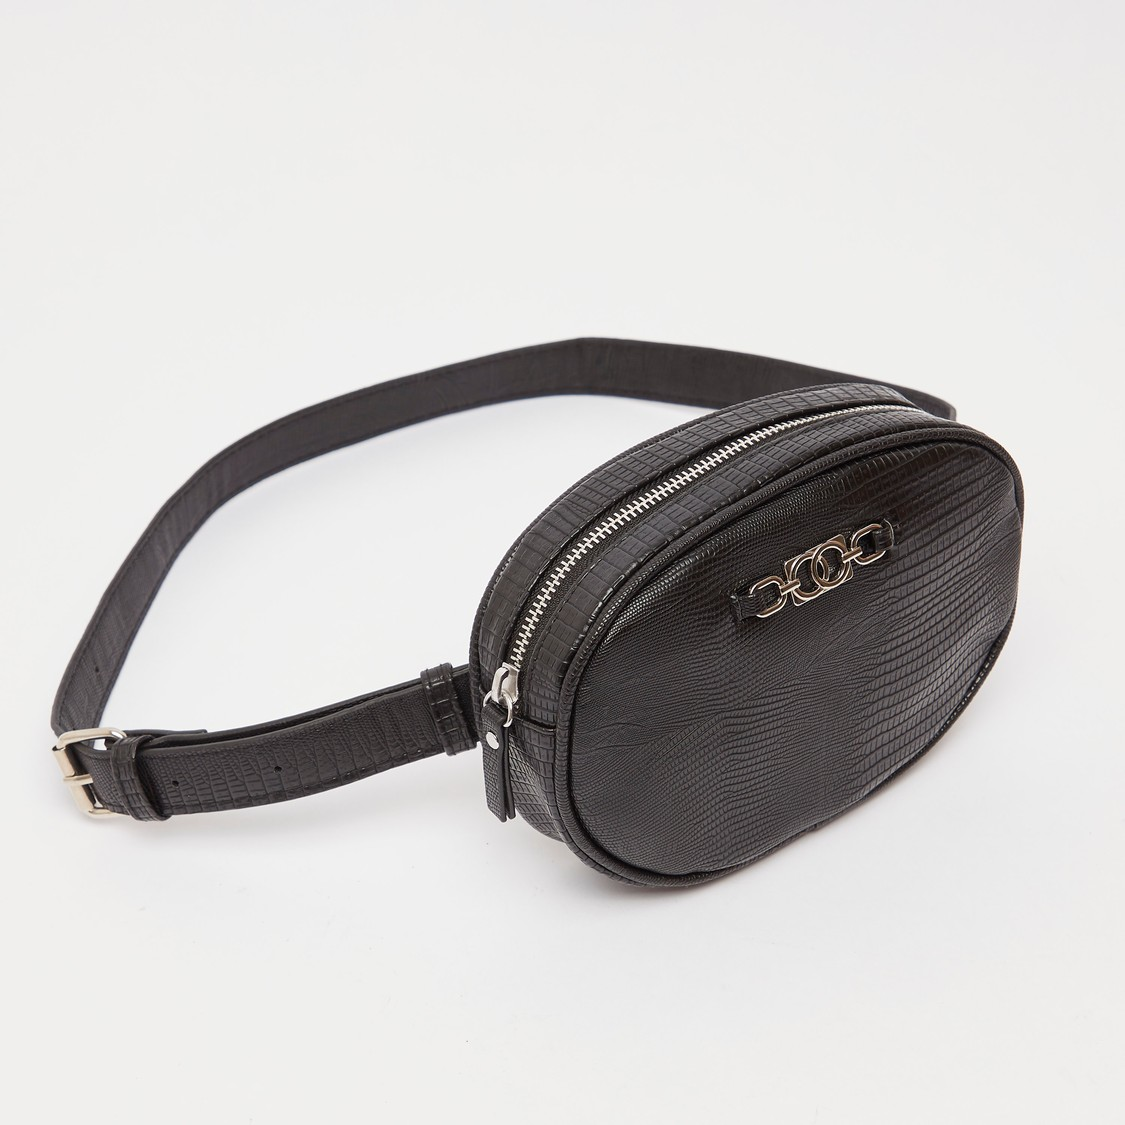 Textured Waist Bag with Metal Accent and Adjustable Strap